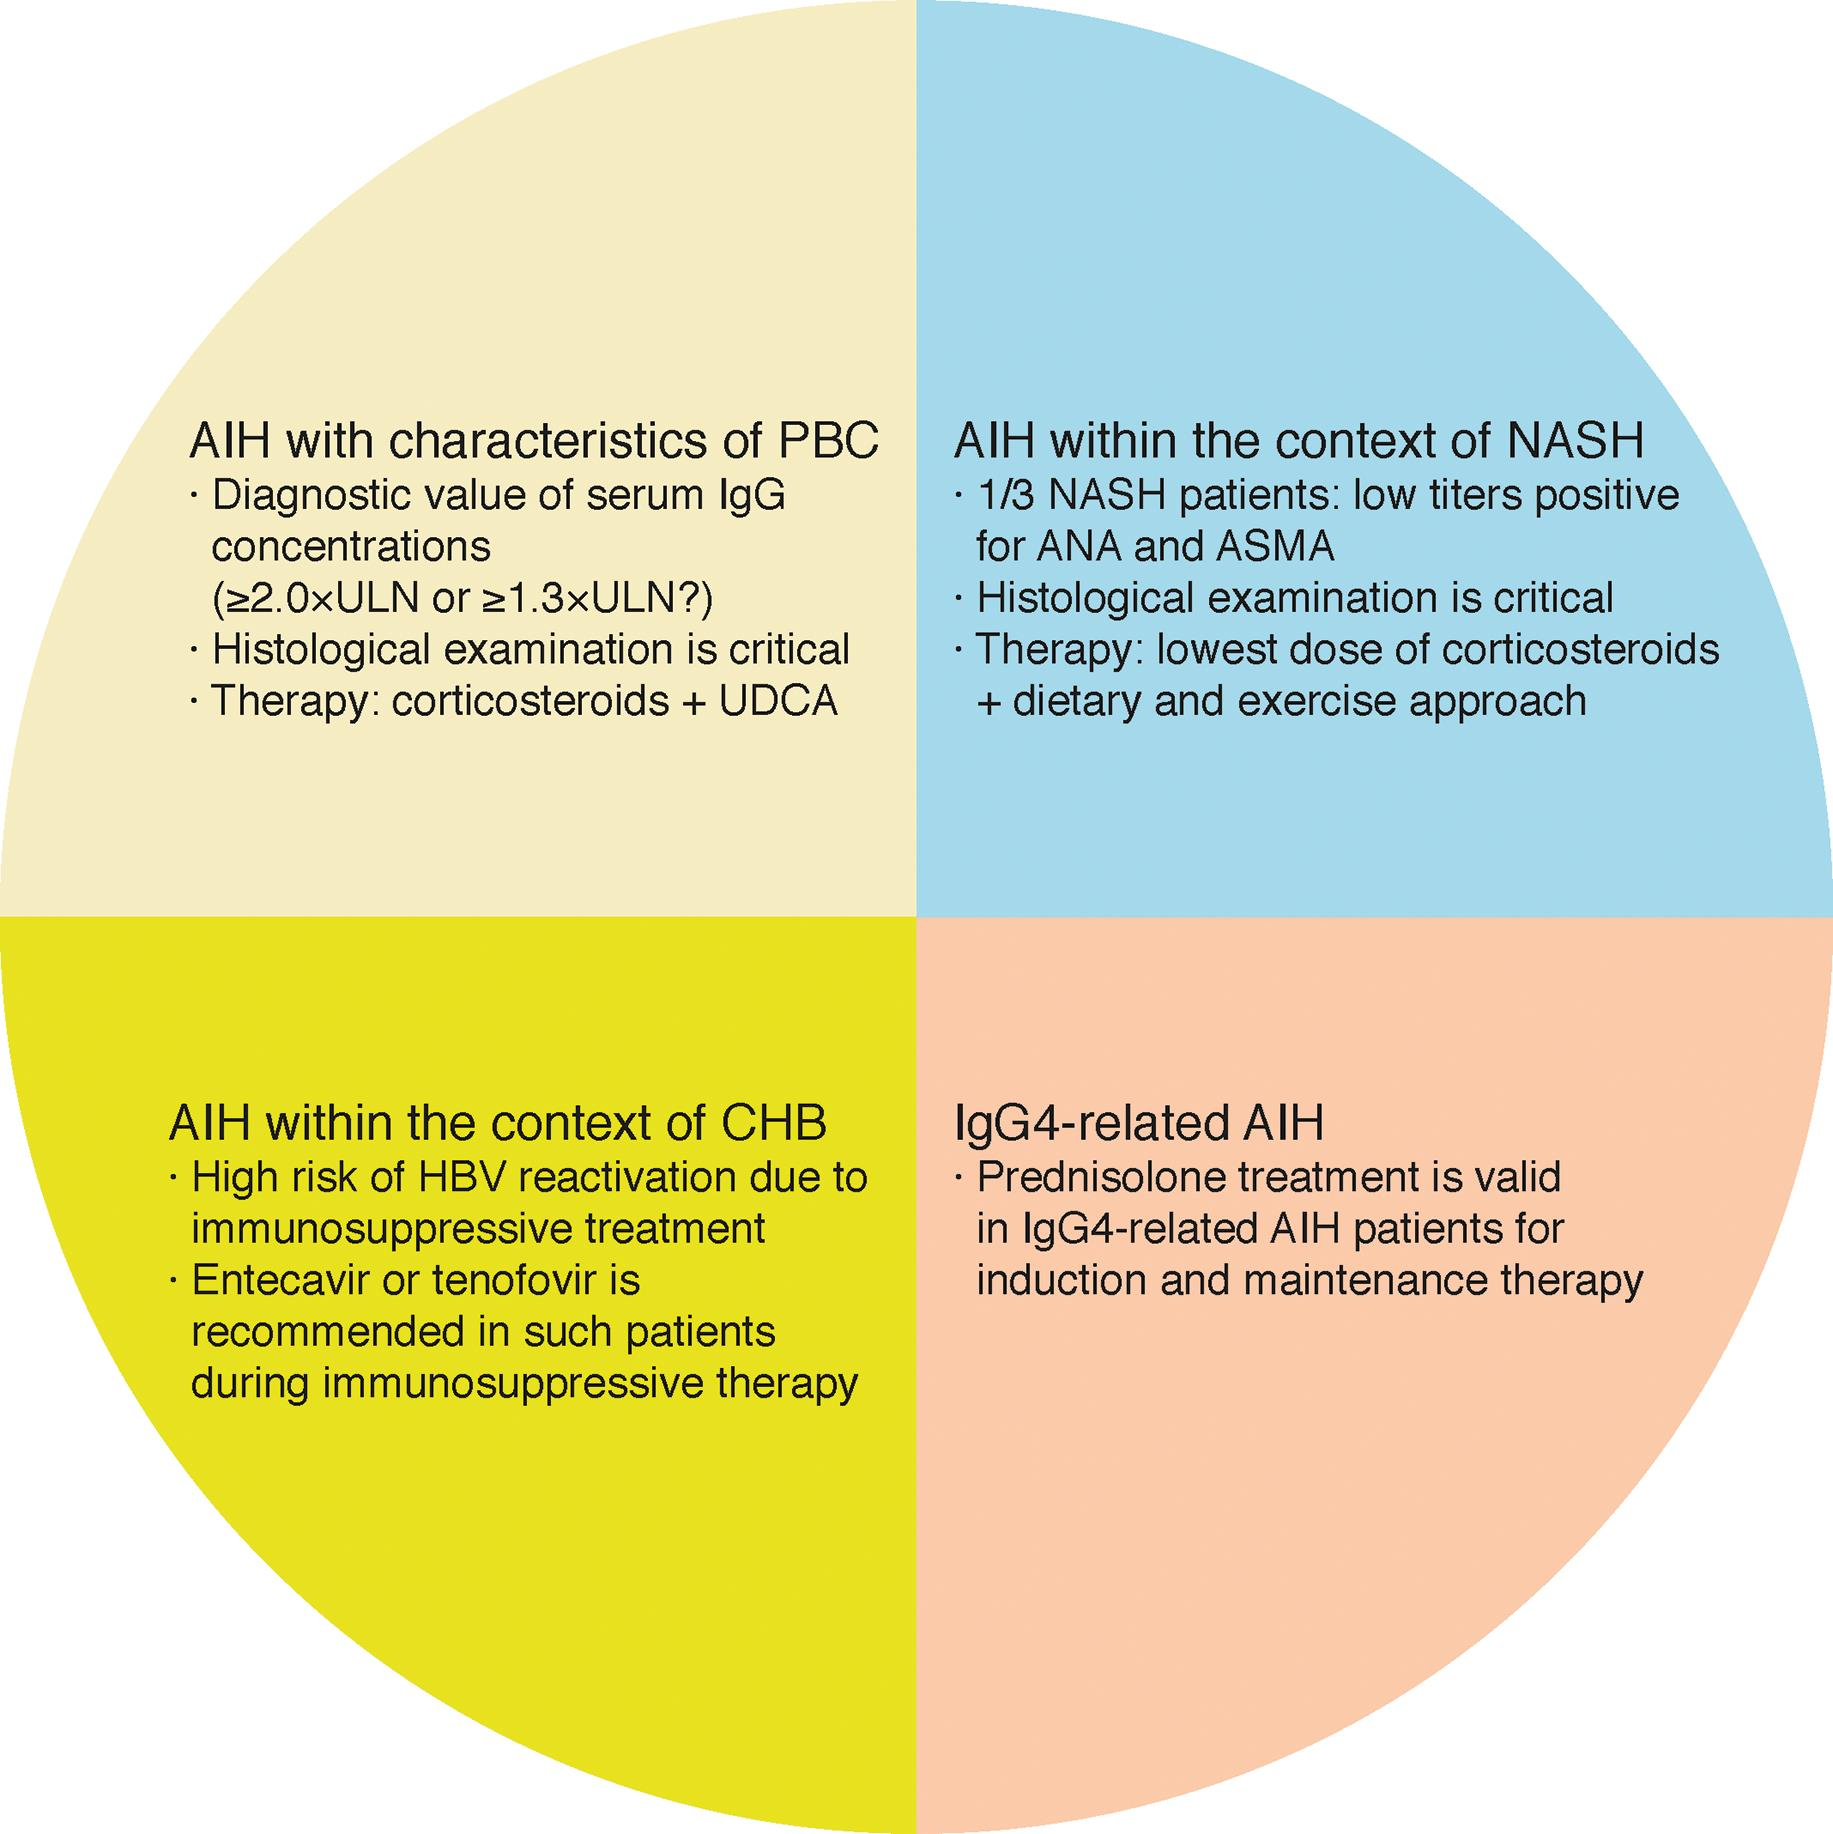 Individualized treatment strategies of some special AIH subgroups.